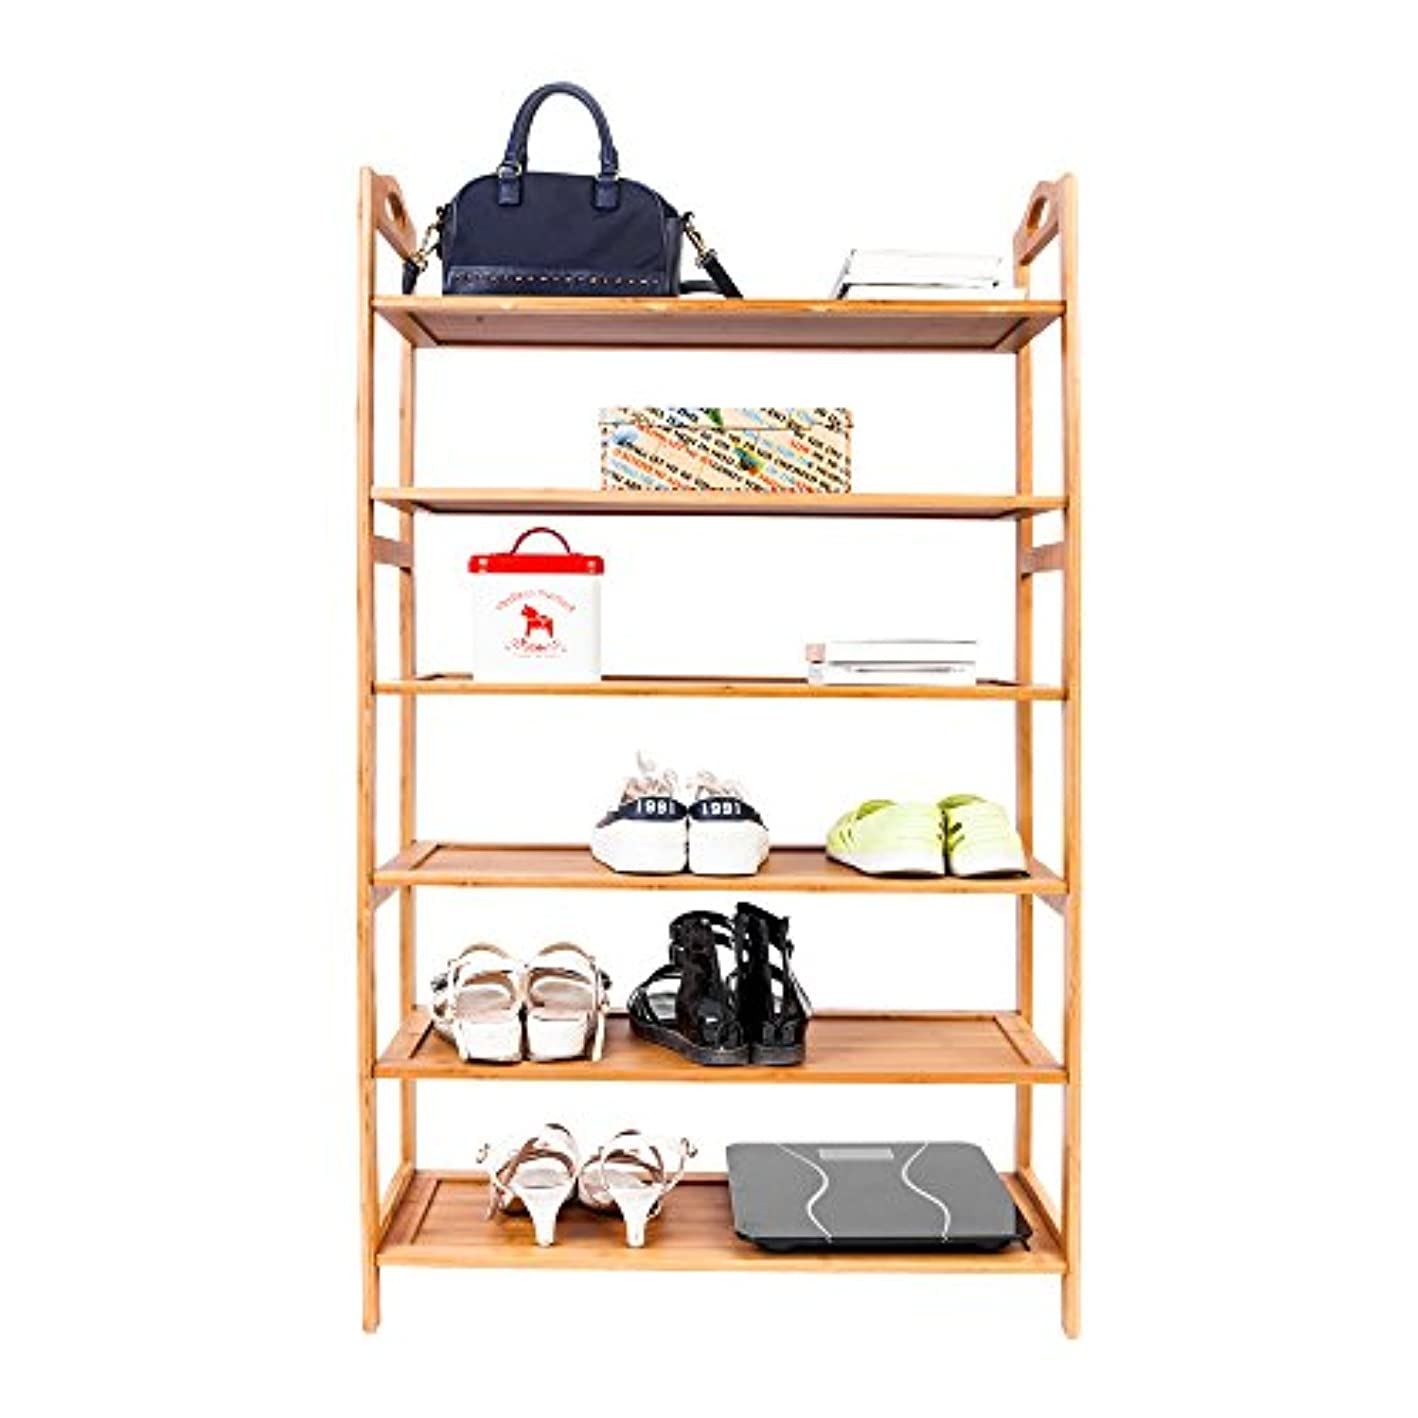 HomVent Shoe Rack,Portable Bamboo Board Boot Shoe Rack Wood Color Unit Entryway Shelf Stackable Cabinet Storage Organizer